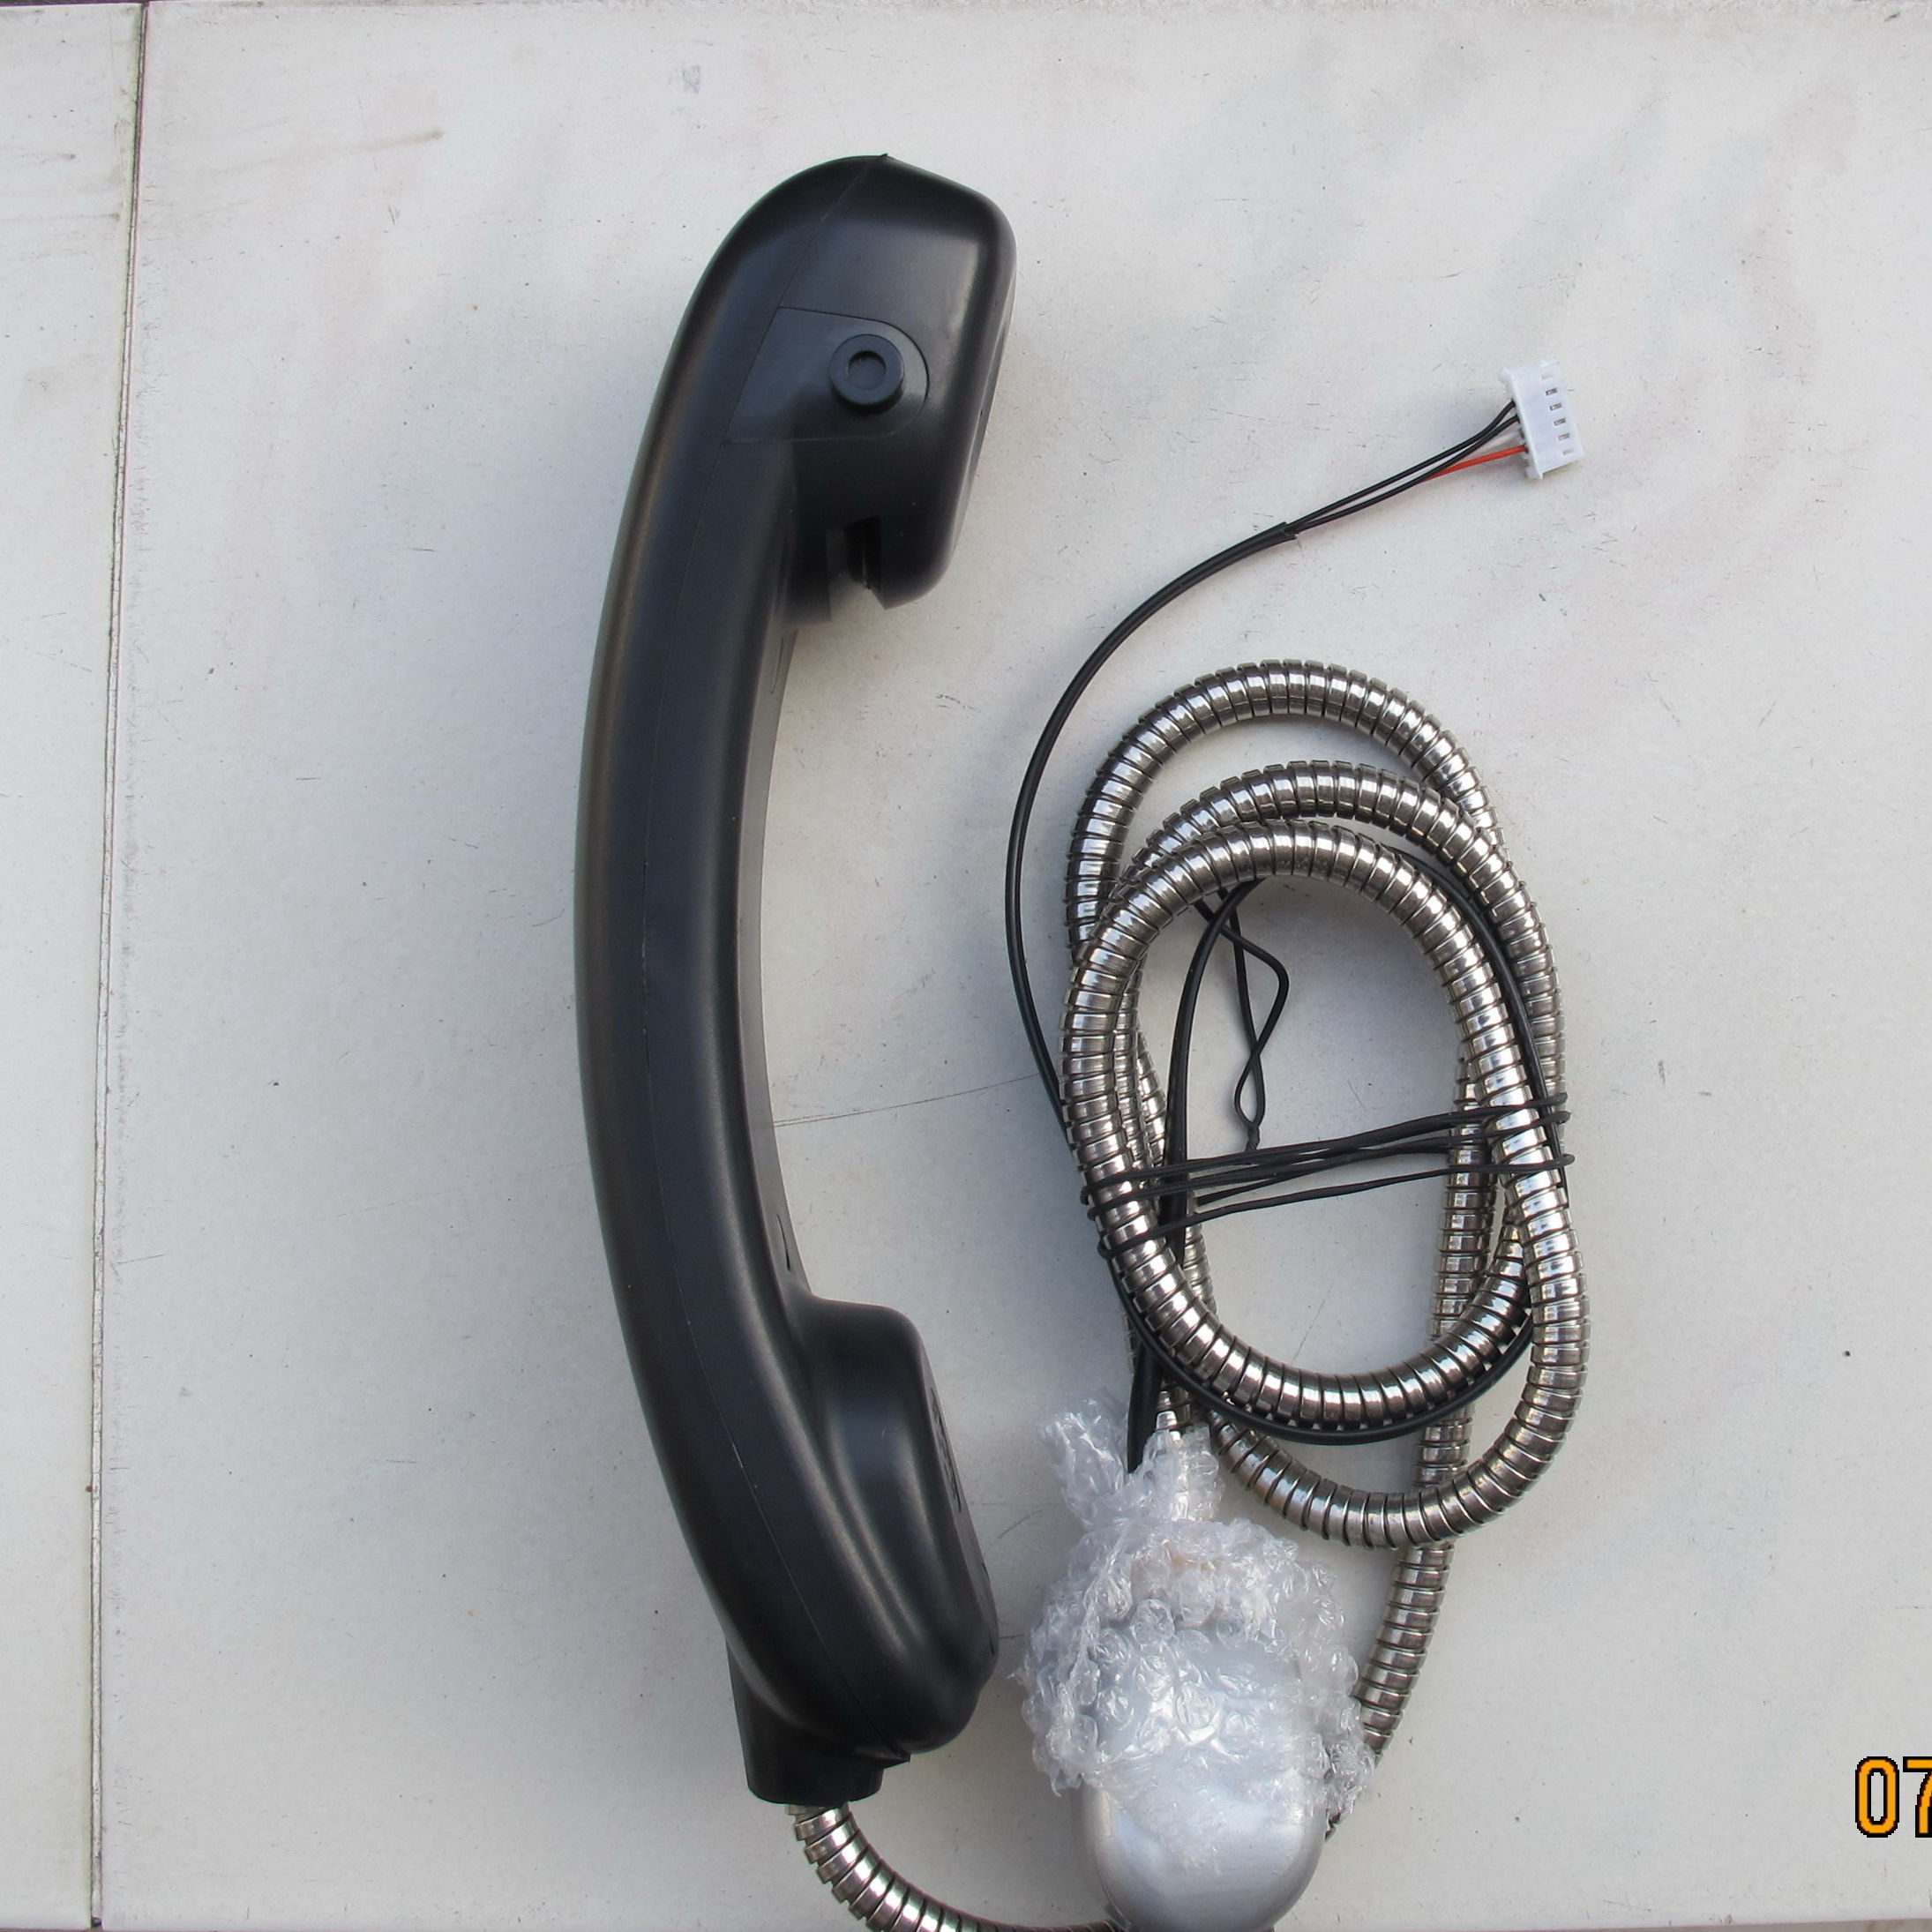 Payphone Handset of Urmet Optima